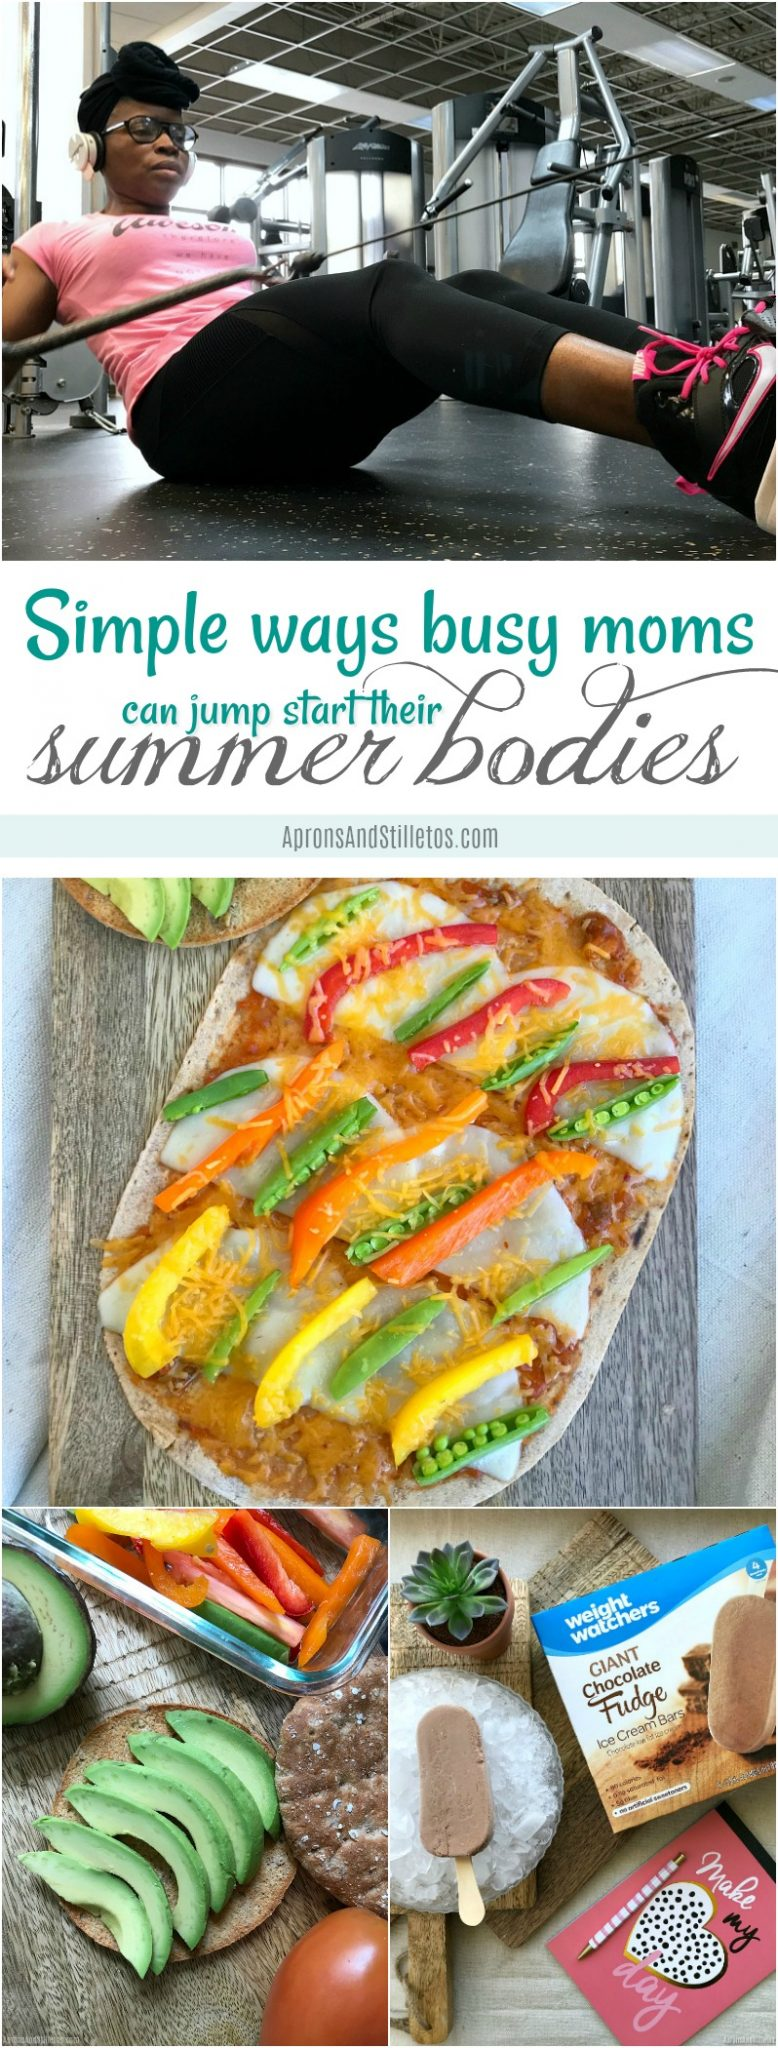 Simple Ways Busy Moms can jump start their Summer Bodies